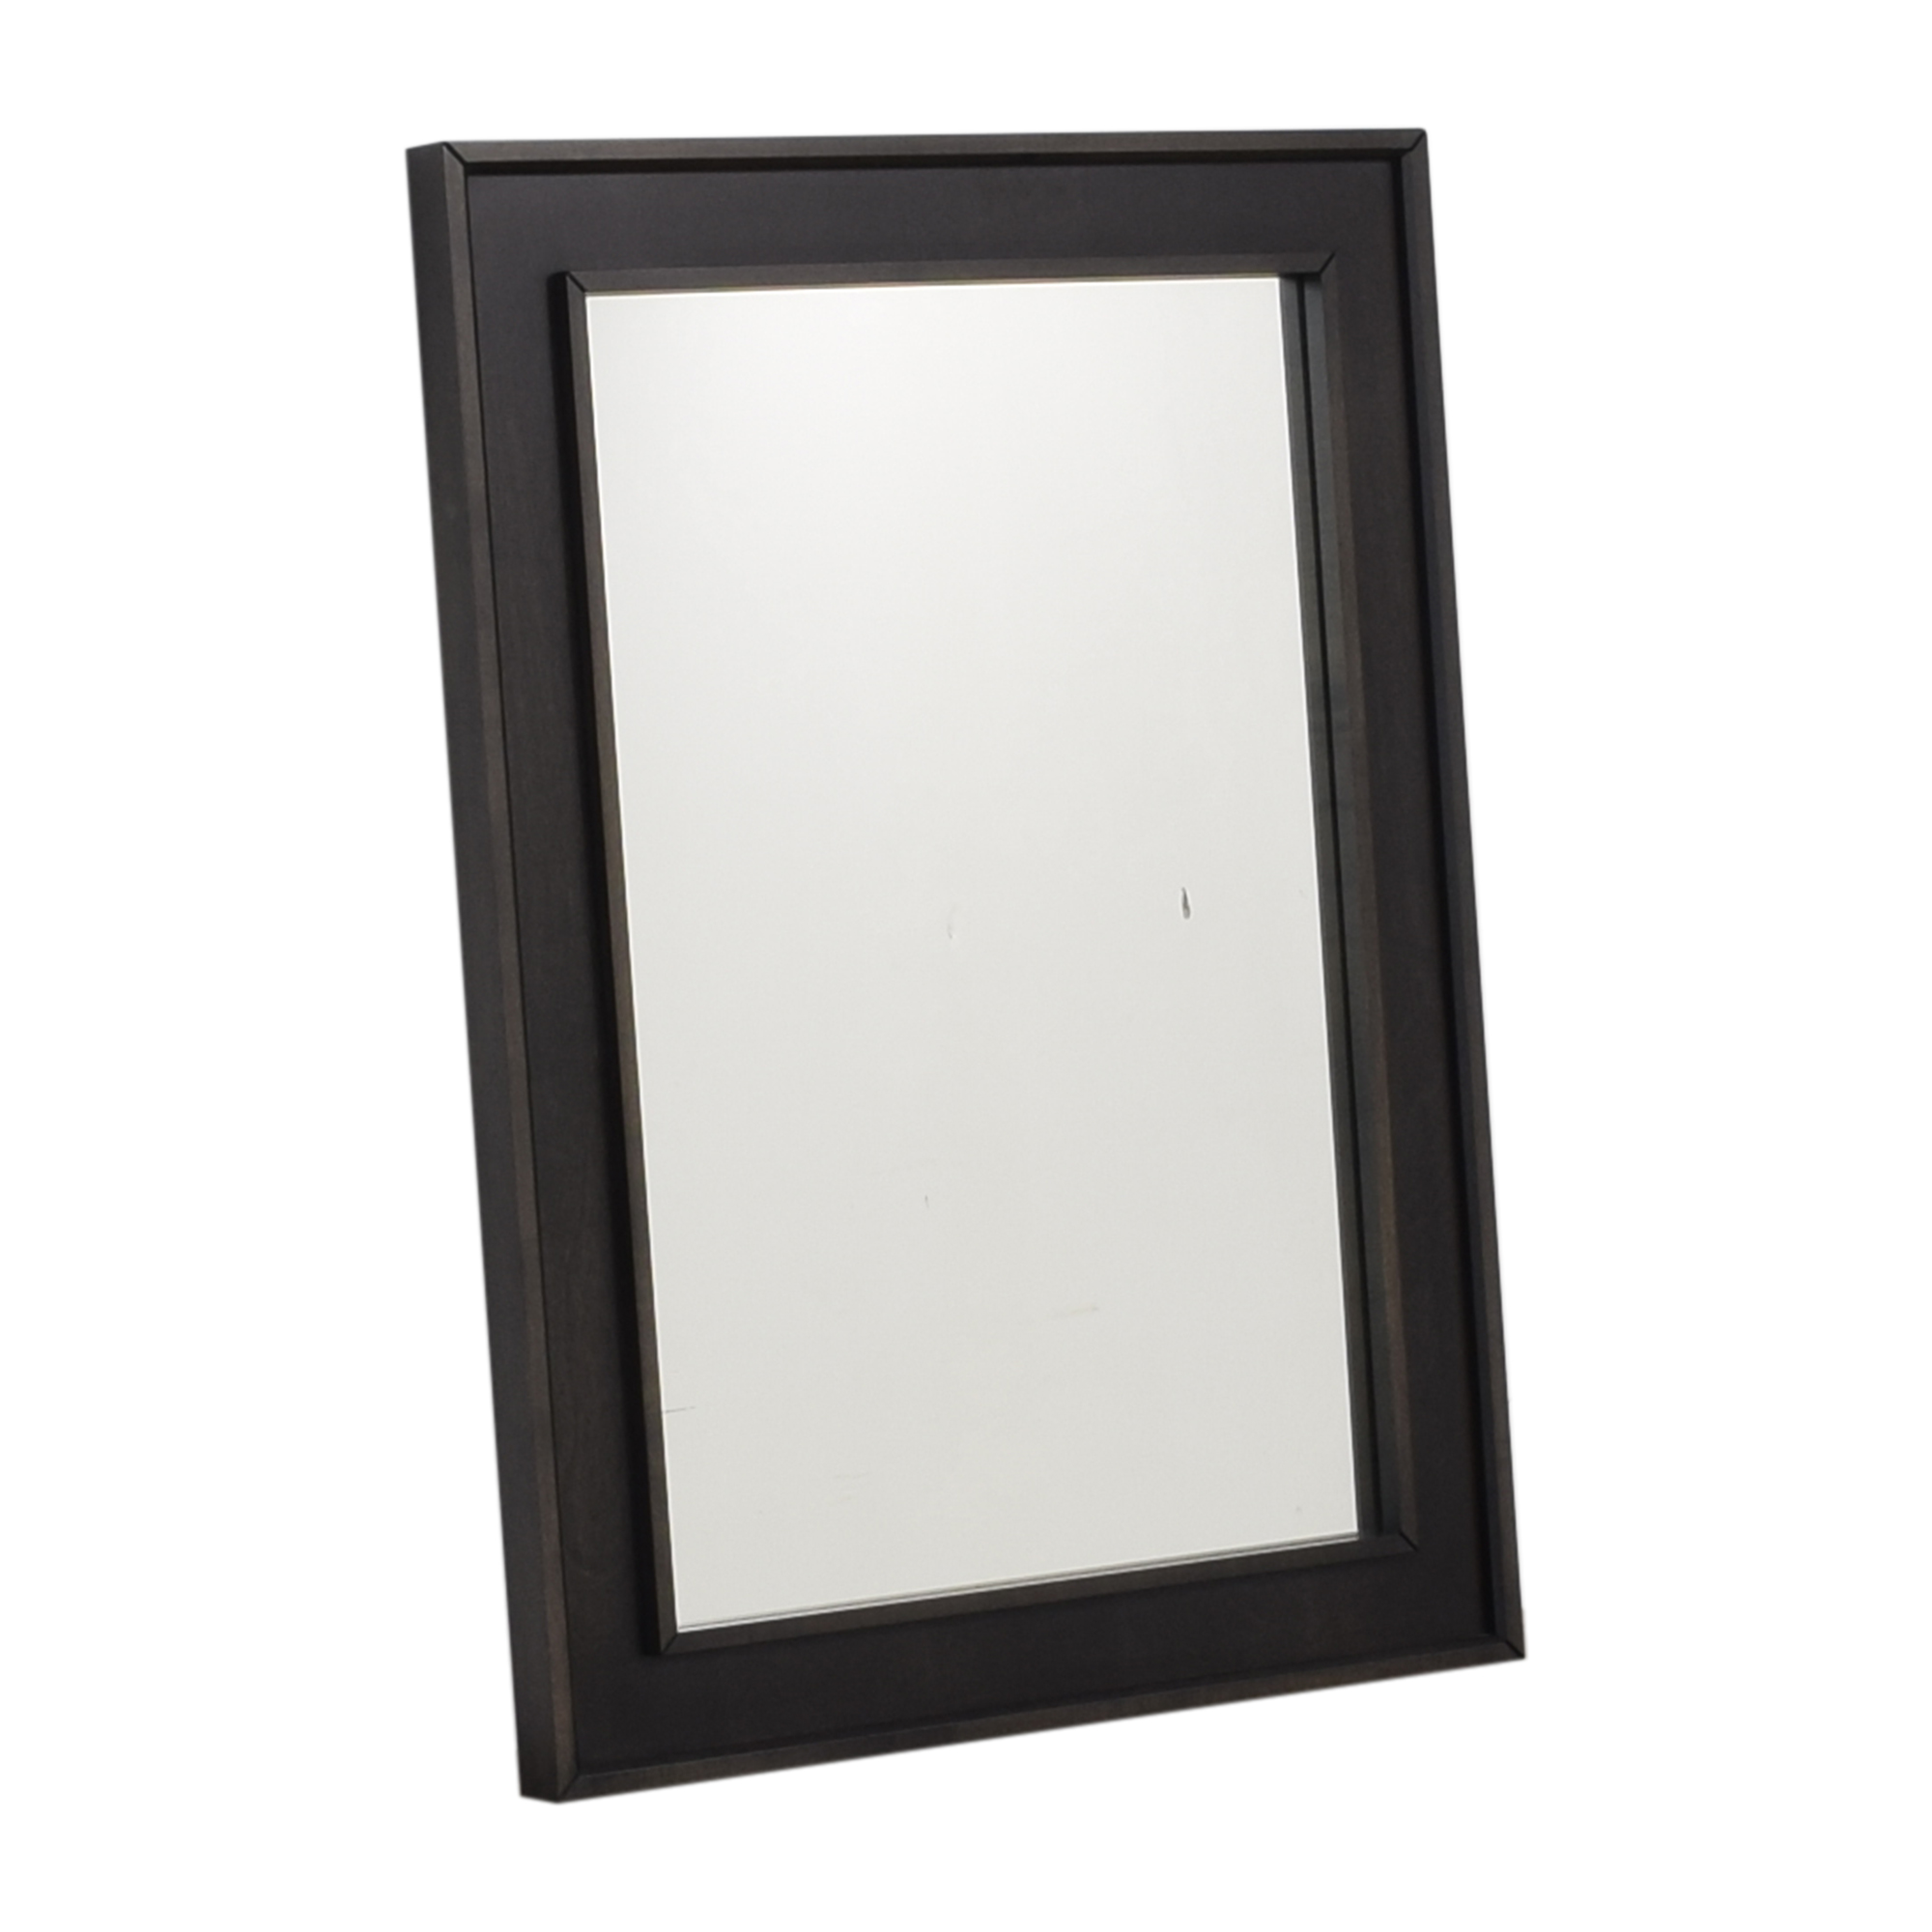 shop Crate & Barrel Framed Wall Mirror Crate & Barrel Decor